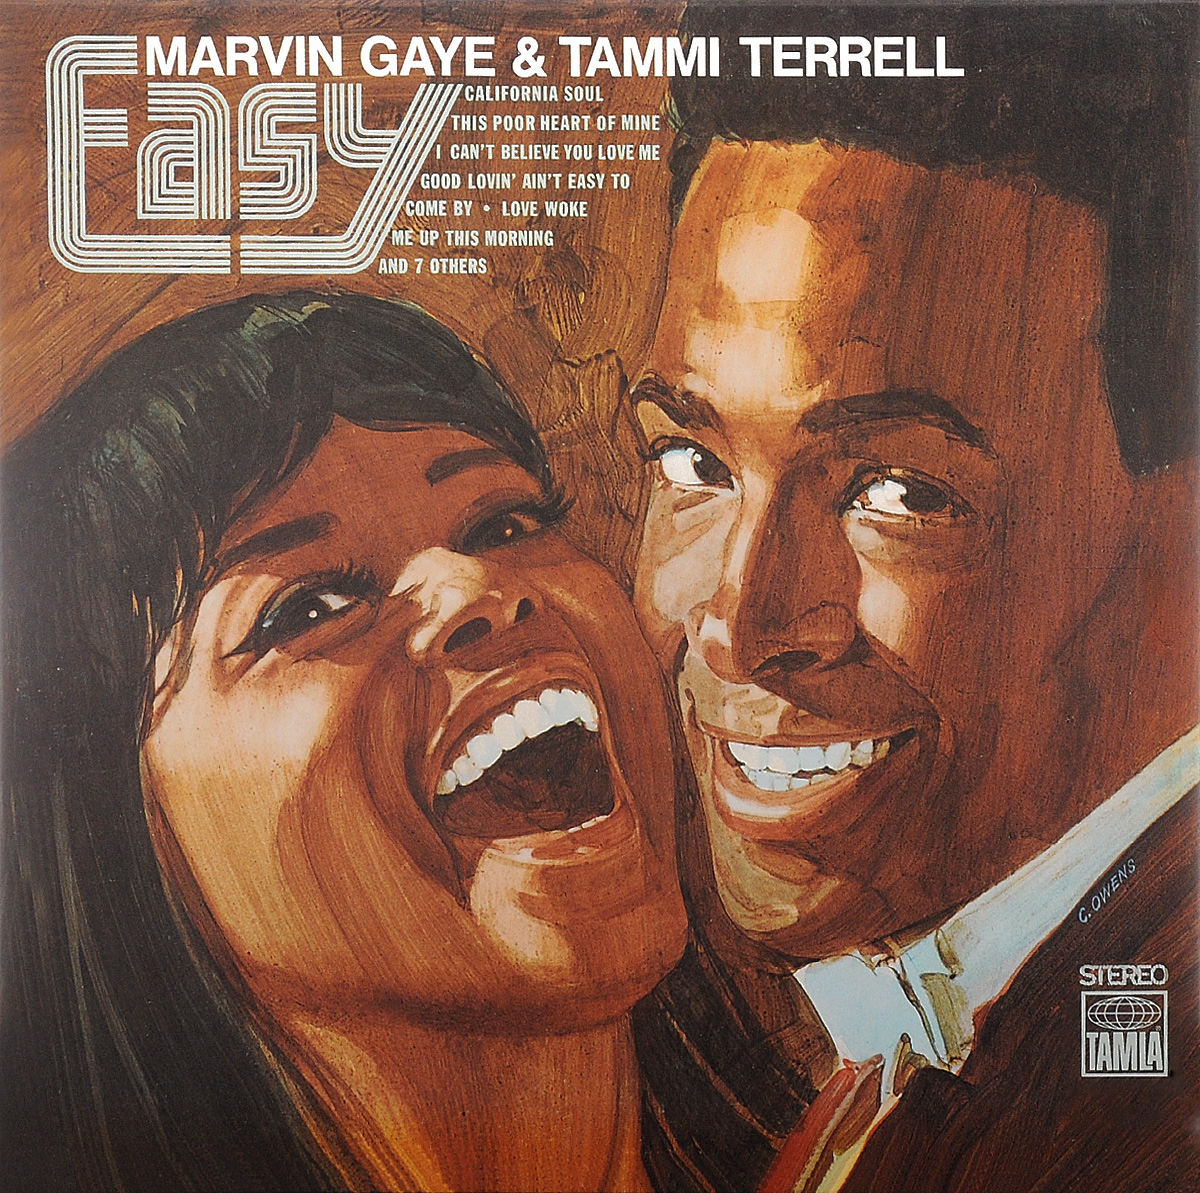 Марвин Гэй,Тамми Тэррелл Marvin Gaye & Tammi Terrell. Easy (LP) марвин гэй marvin gaye volume jne 1961 1965 7 lp